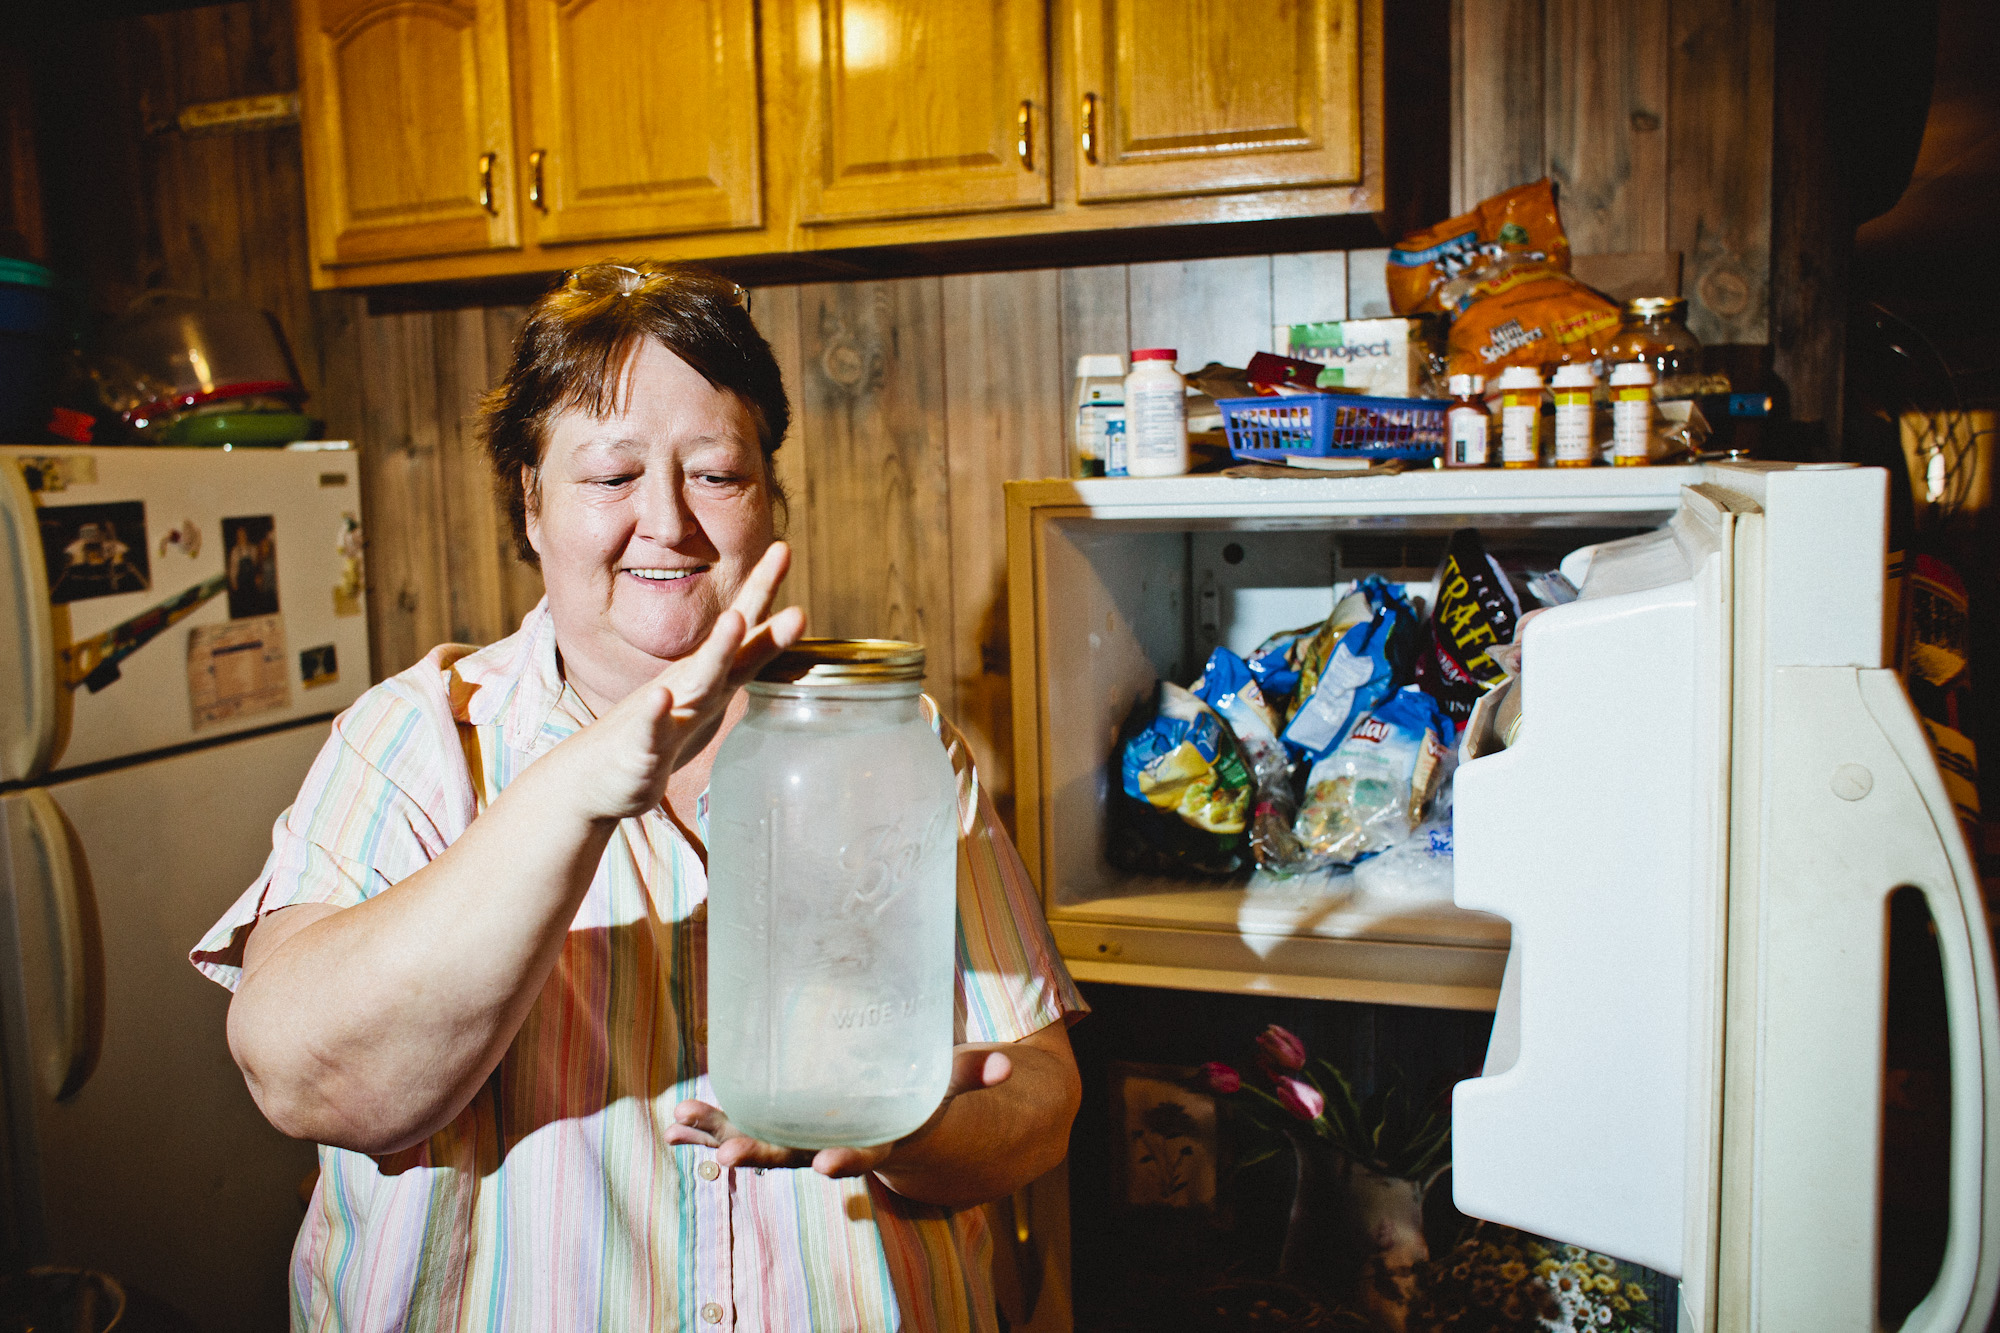 Pam Sutton, Popcorn's widow, keeps a batch of Popcorn's whiskey in the freezer. A picture of Popcorn hangs in the house.